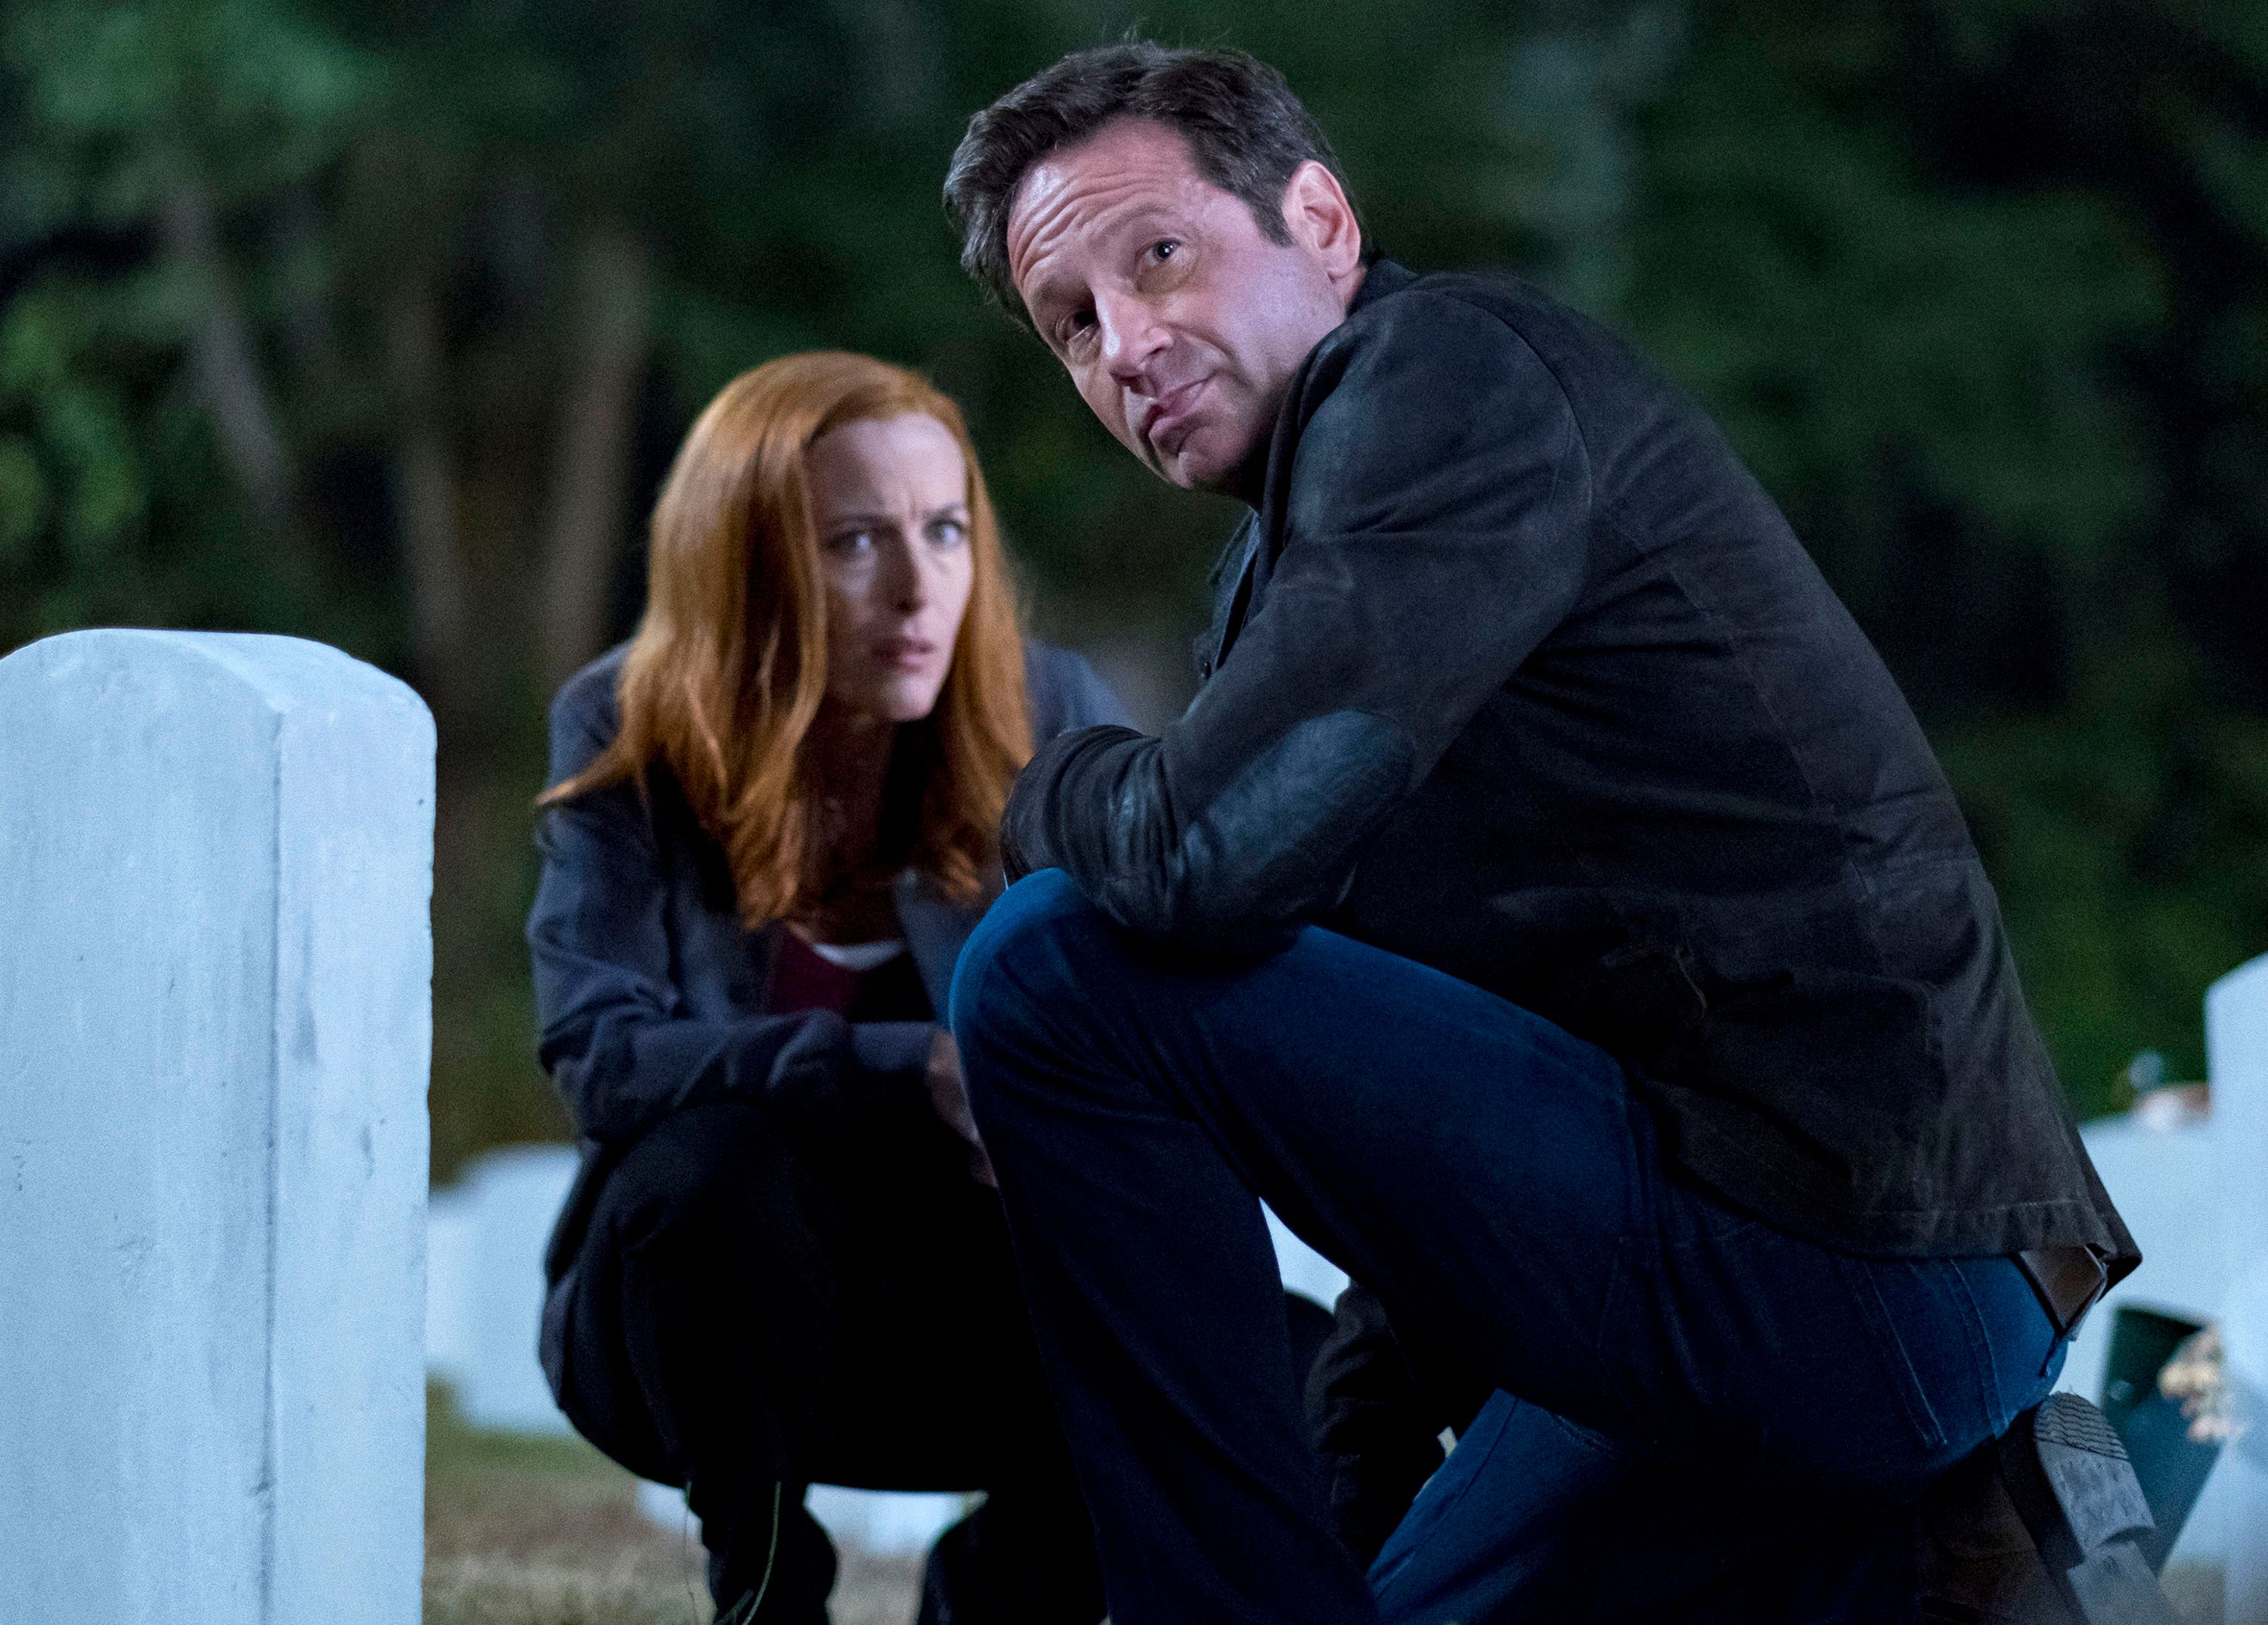 Fox boss: 'No plans' for more The X-Files